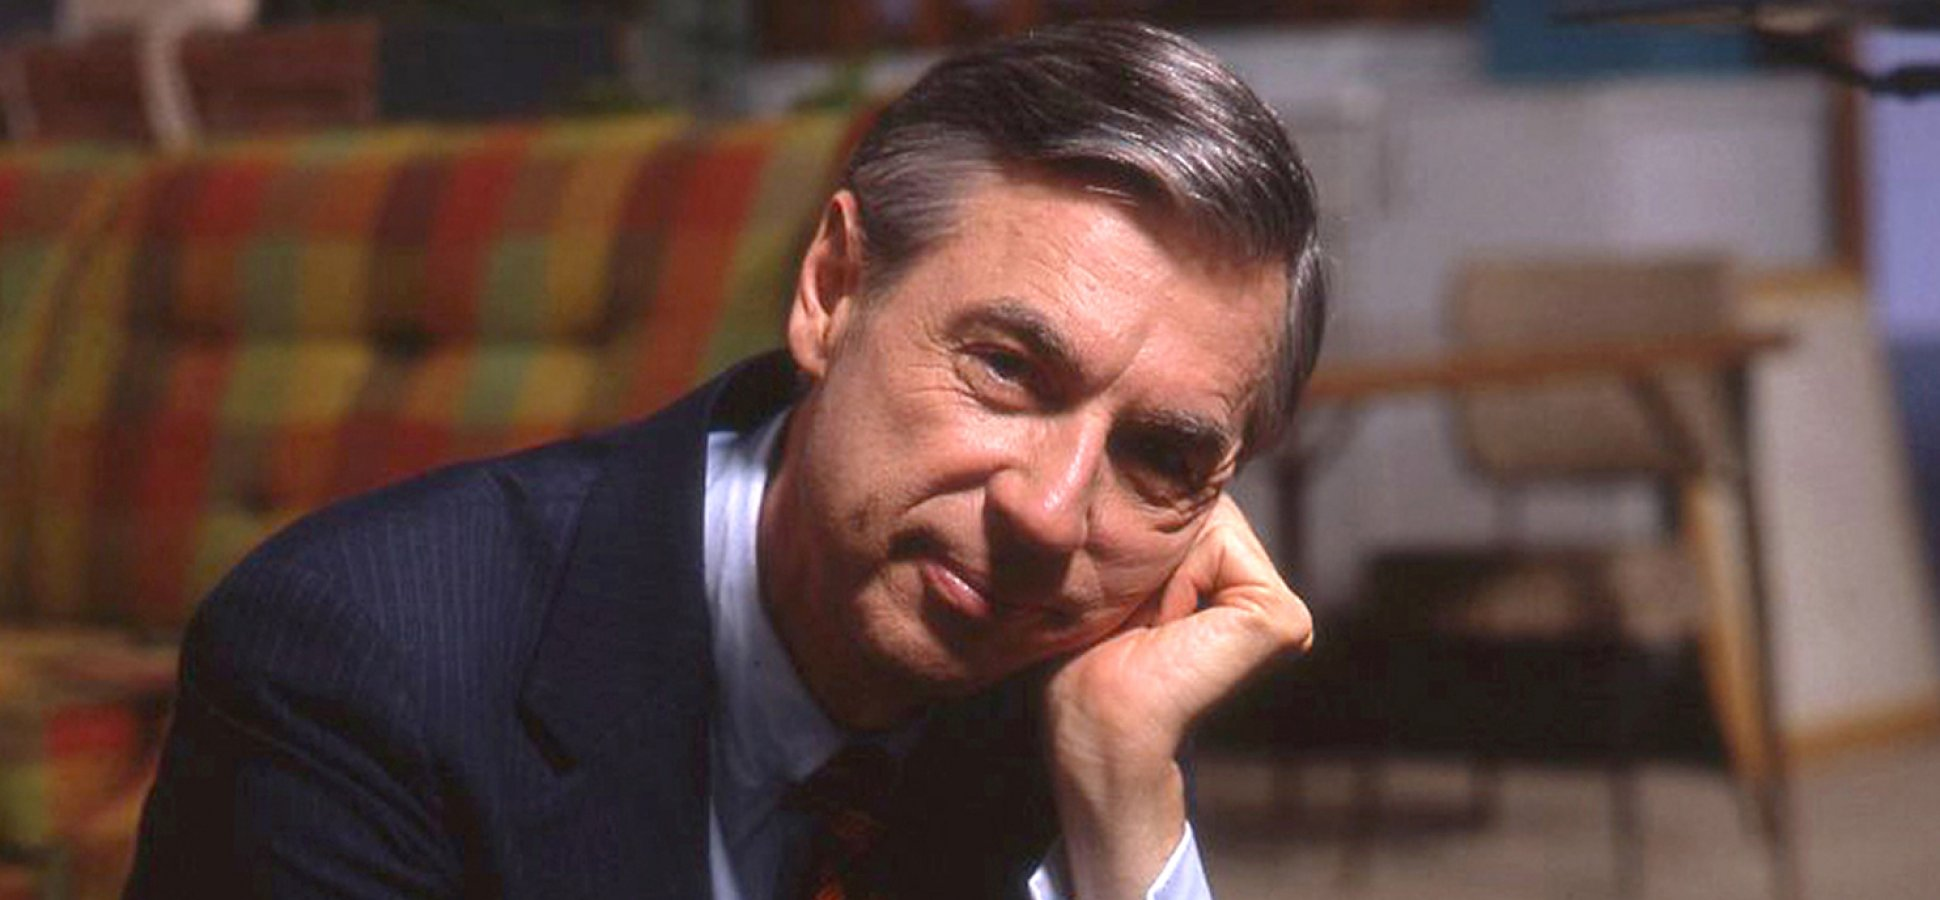 Mr. Rogers facts